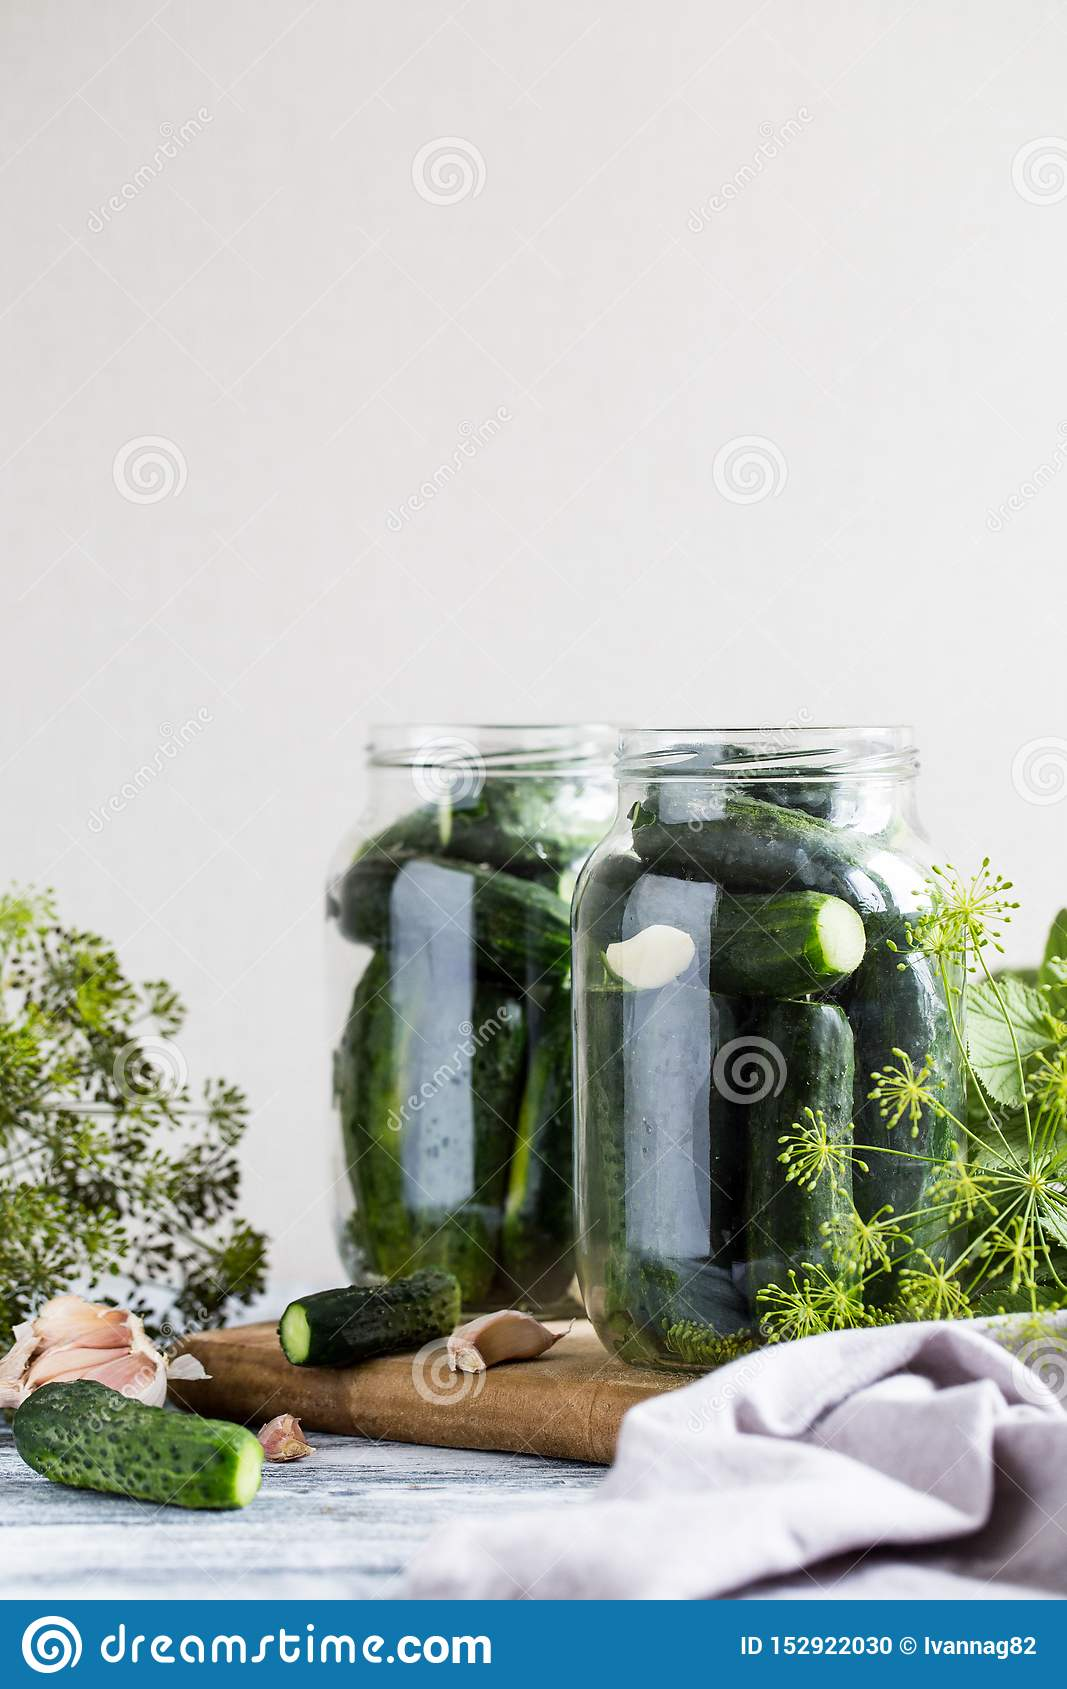 Cucumbers Spices And Herbs In A Preservation Jar Homemade